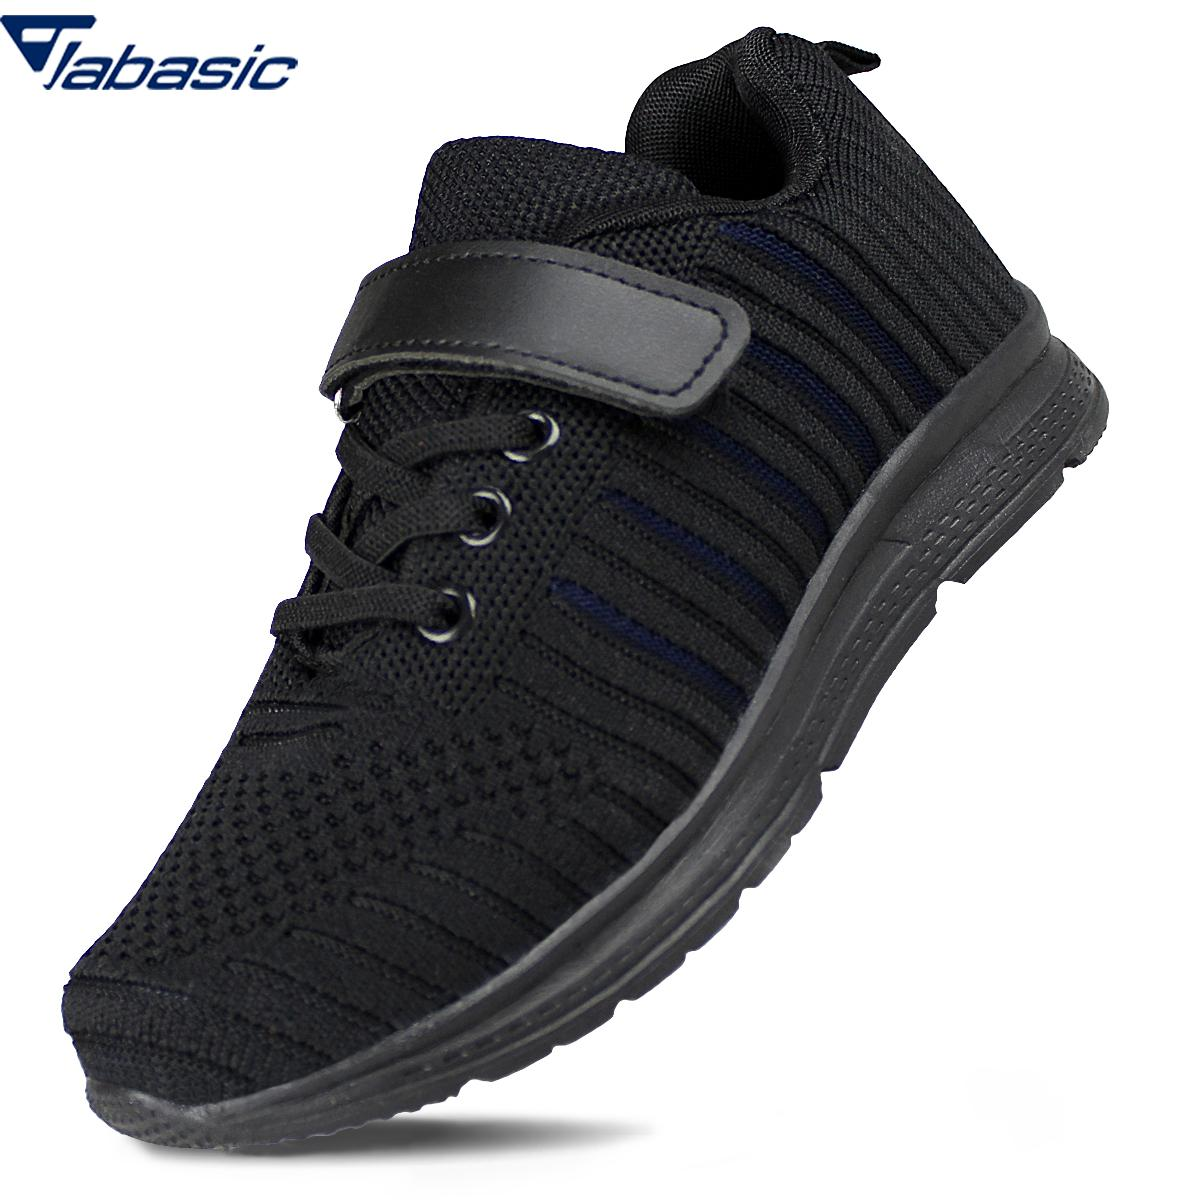 Jabasic Boys Girls Sneakers Children School Sport Trainers Baby Toddler Little Big Kids  Sport Shoes Sneakers For Boys GirlsJabasic Boys Girls Sneakers Children School Sport Trainers Baby Toddler Little Big Kids  Sport Shoes Sneakers For Boys Girls